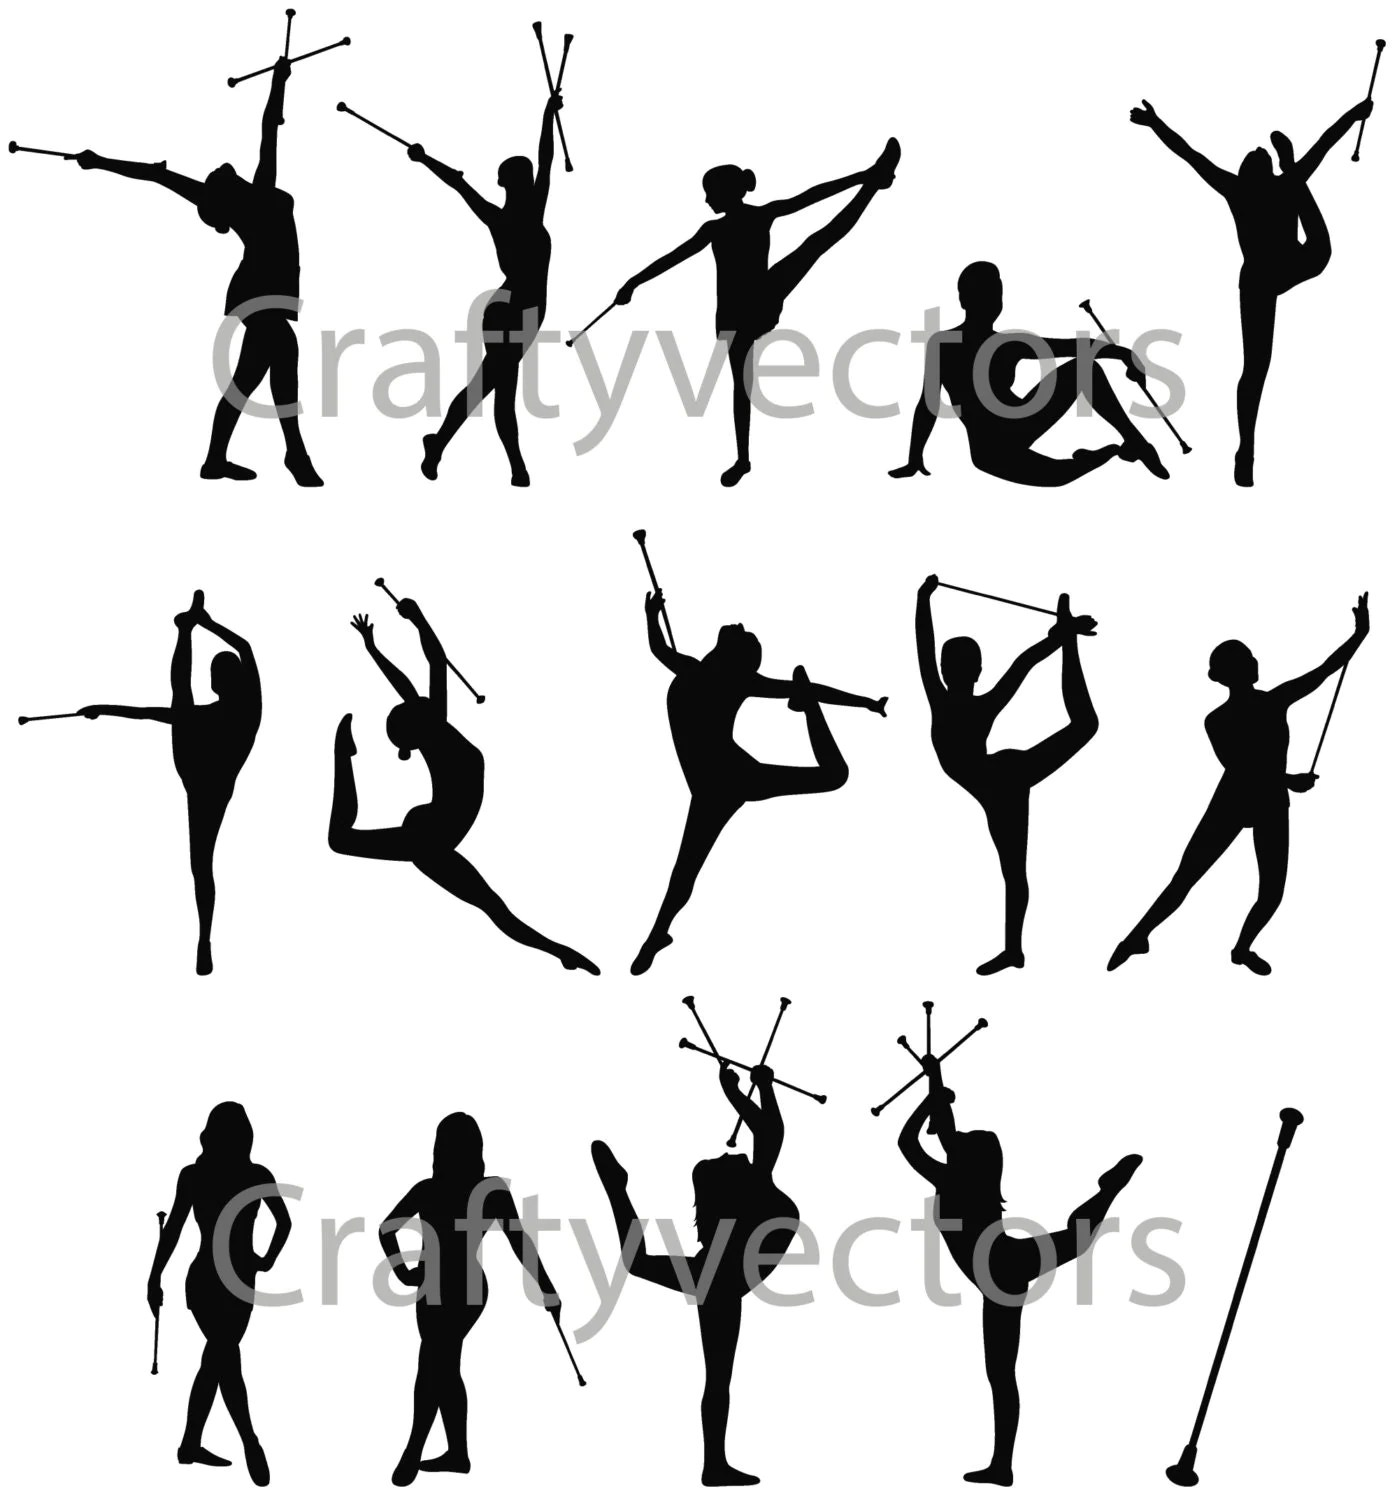 Baton Twirling Vector File By Craftyvectors On Etsy